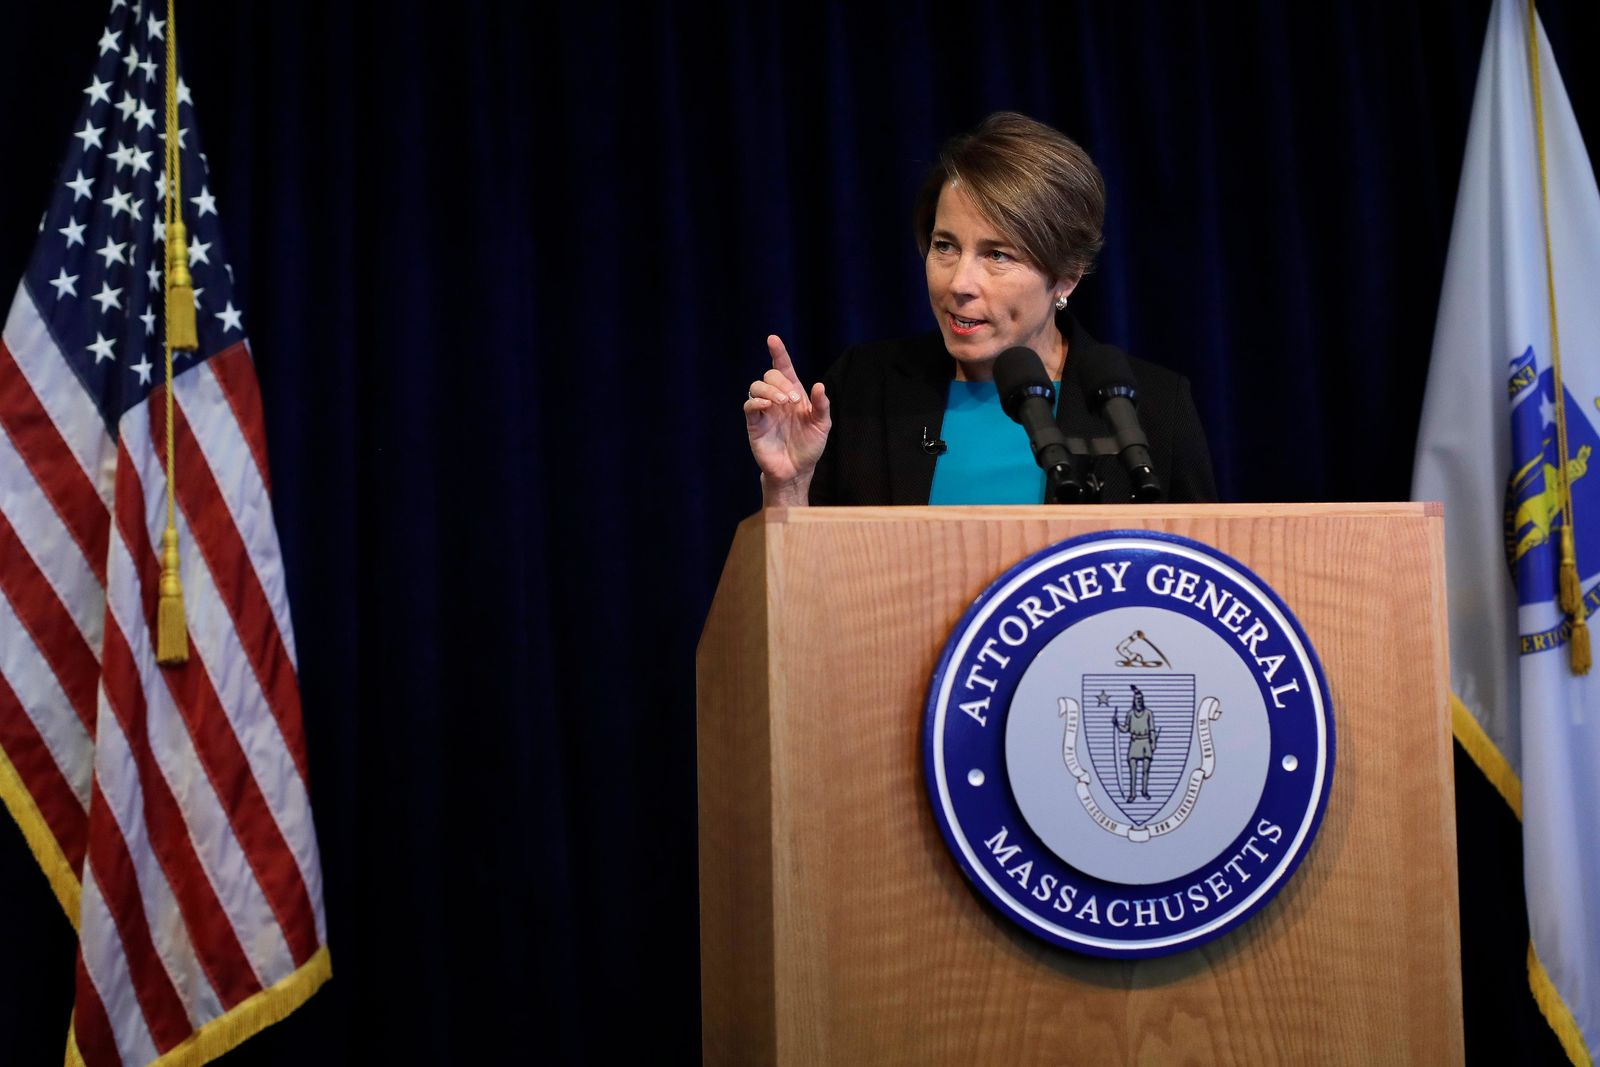 Massachusetts Attorney General Maura Healey takes questions from members of the media during a news conference, Monday, Sept. 16, 2019, in Boston. (AP Photo/Steven Senne)